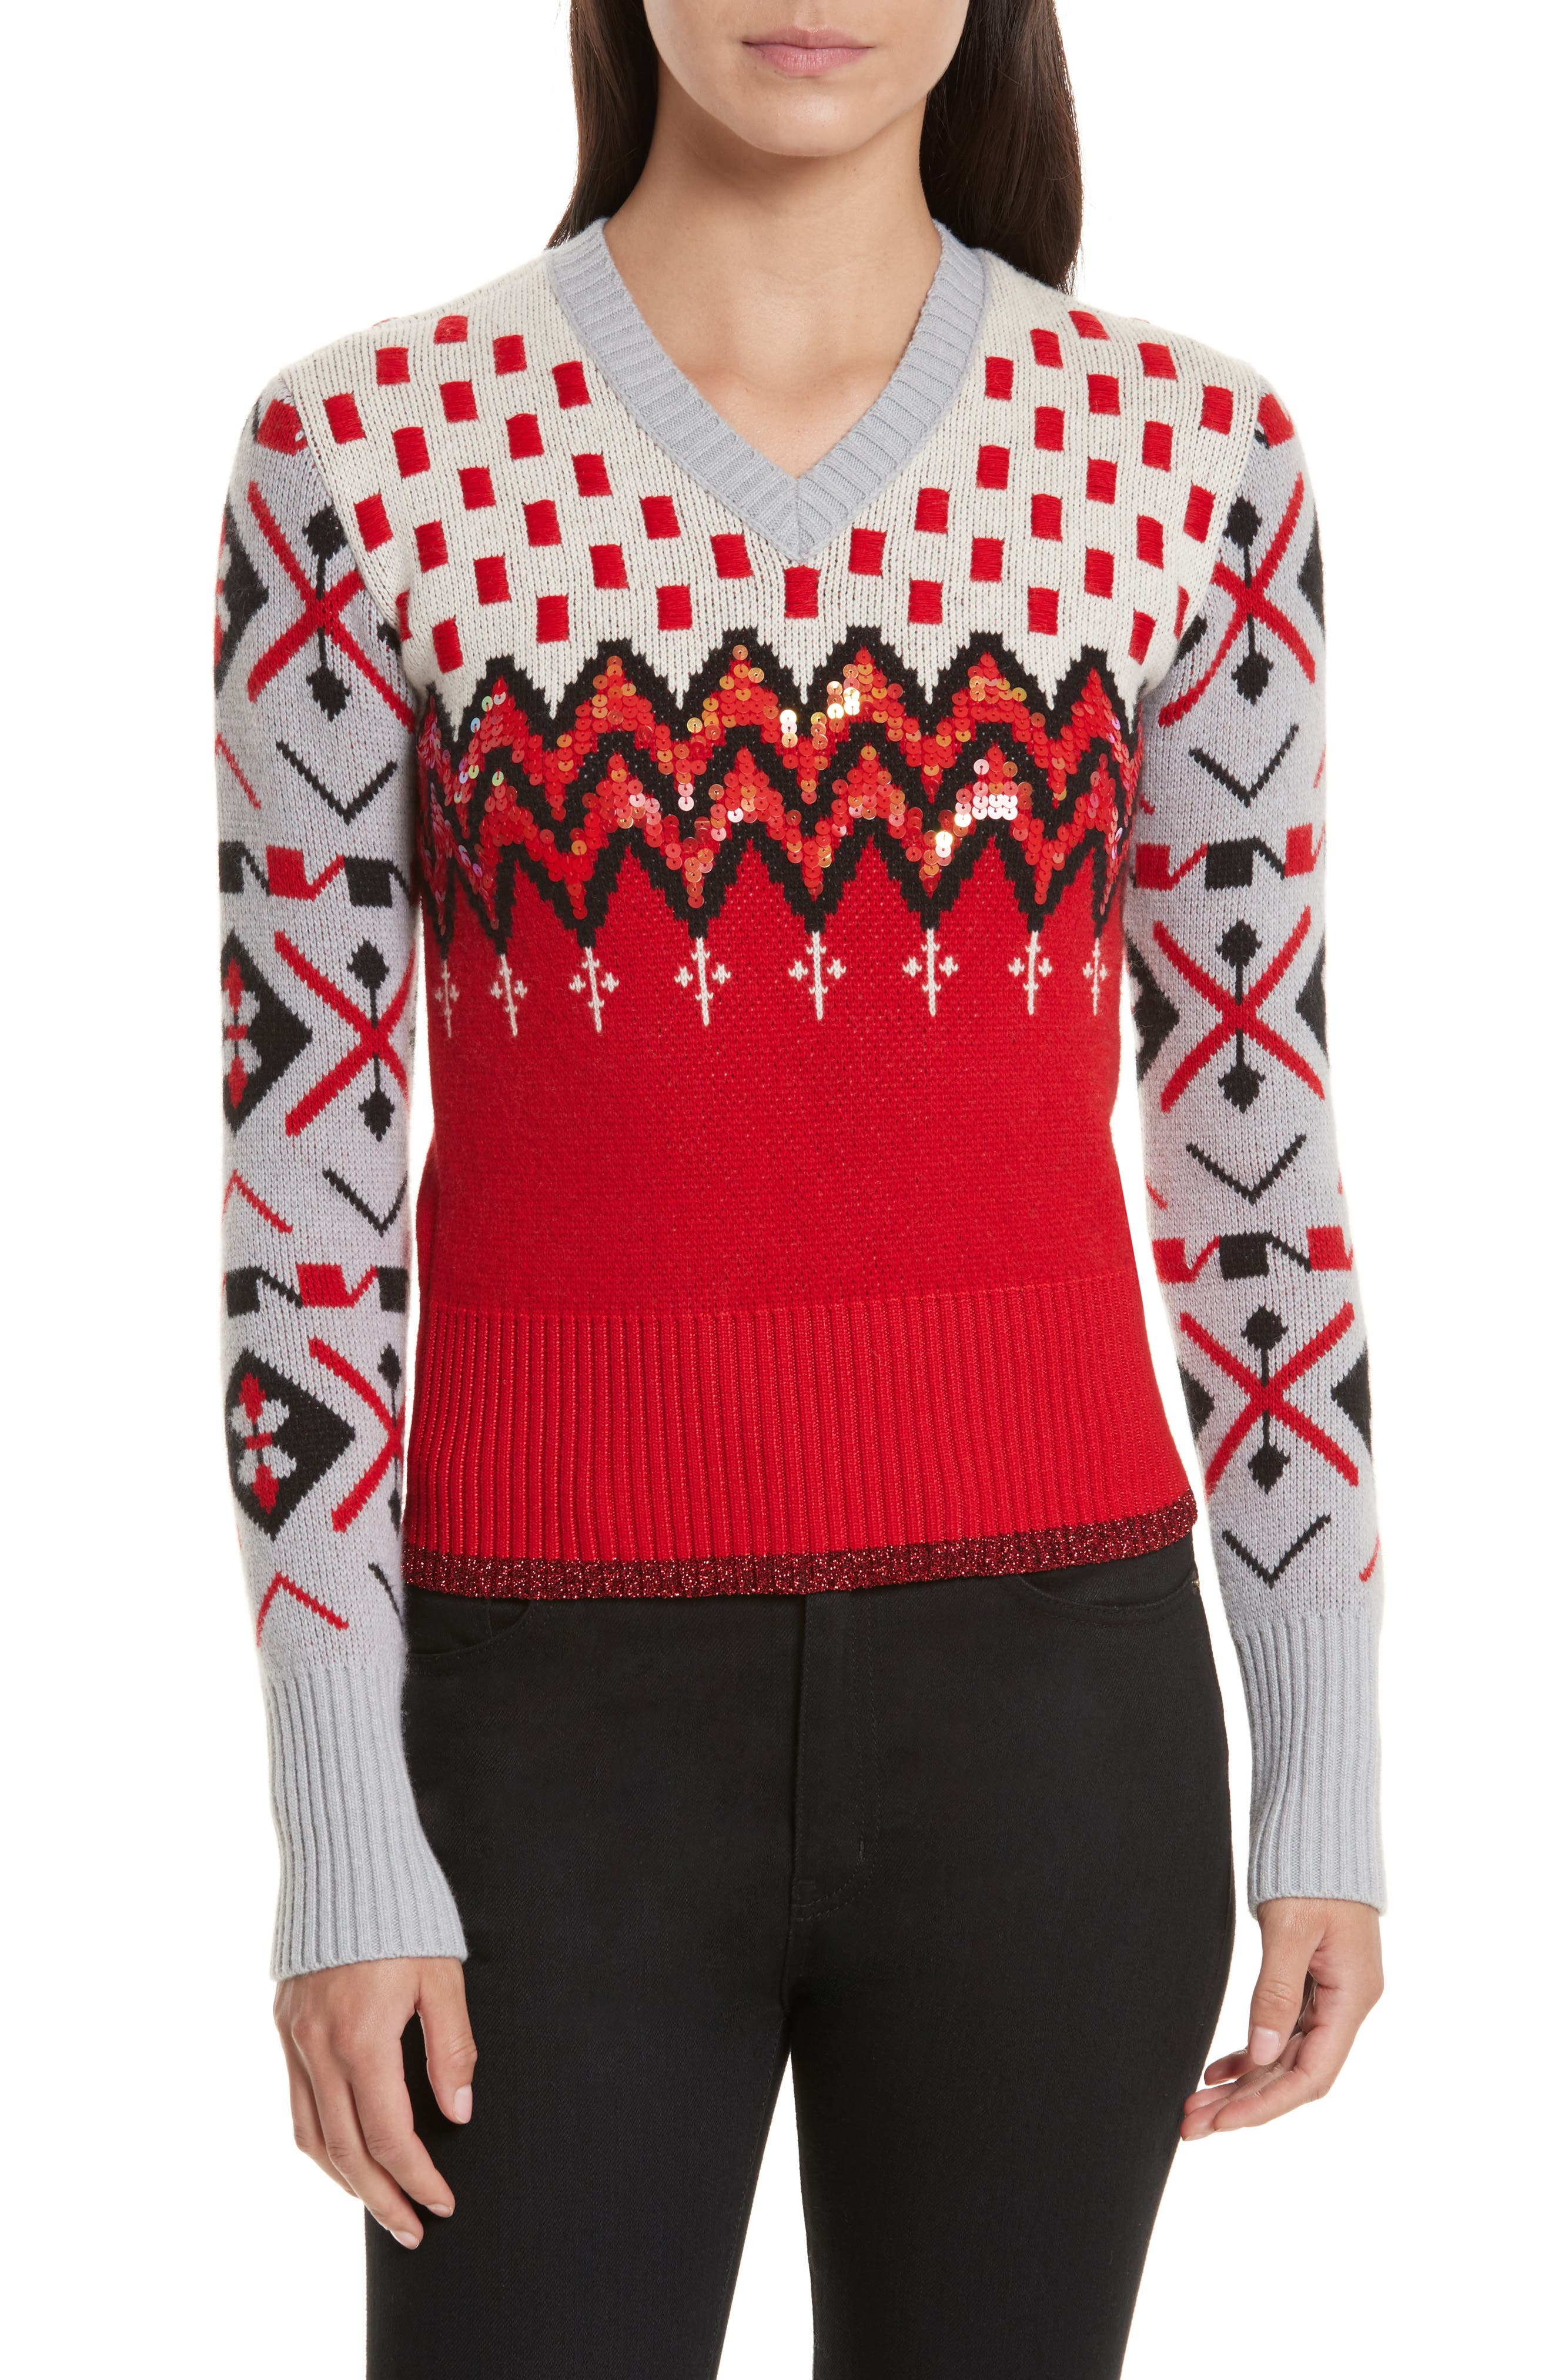 COACH 1941 Wool & Cashmere Jacquard Sweater